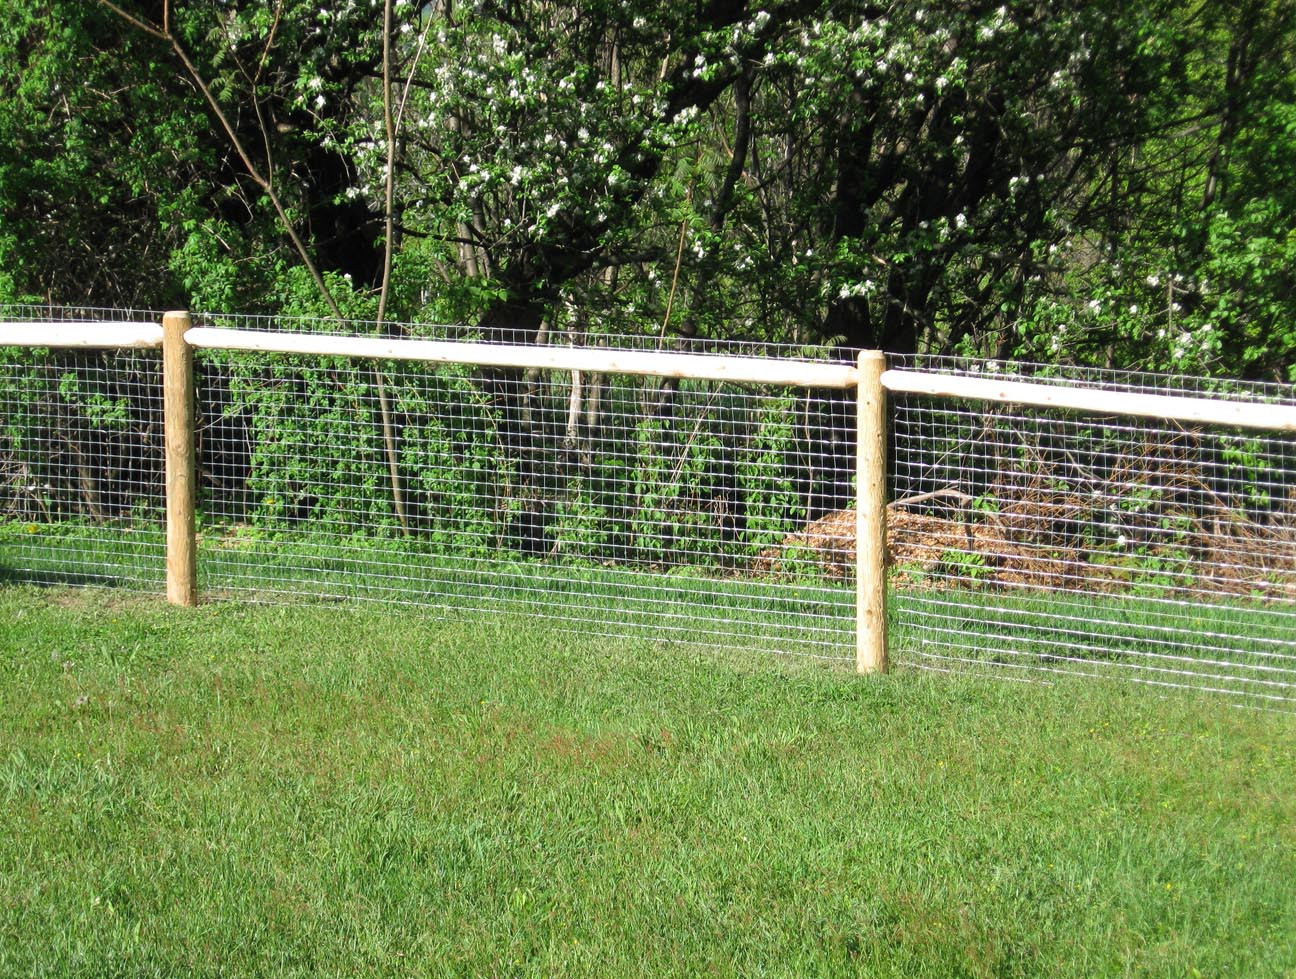 Best ideas about Cheap Fence DIY . Save or Pin Cheap Fence Ideas For Dogs In DIY Reusable And Portable Now.